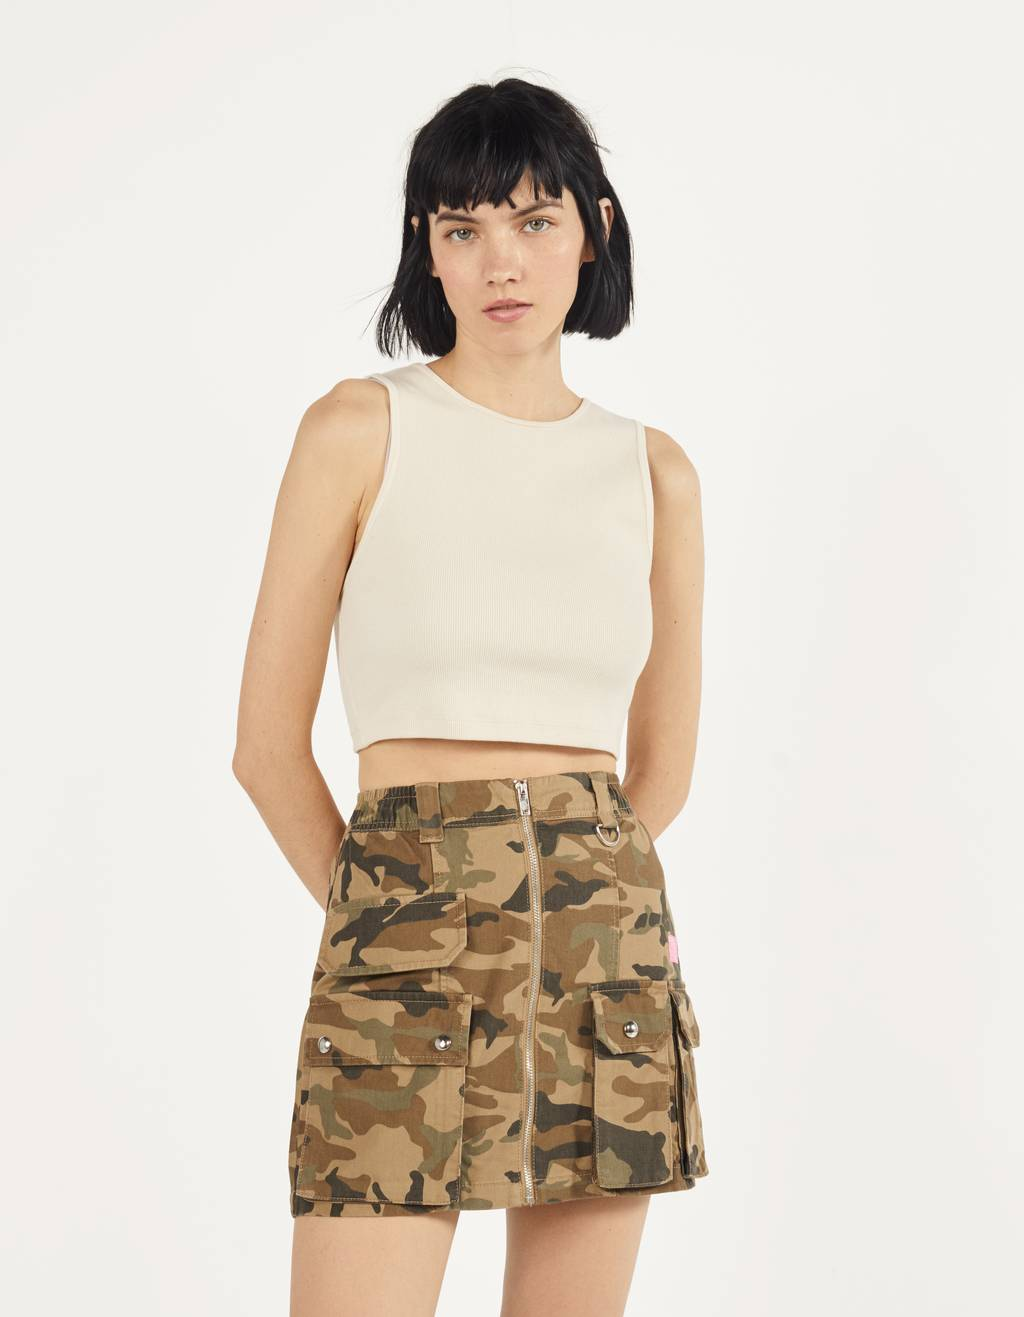 Short cargo skirt with zip detail